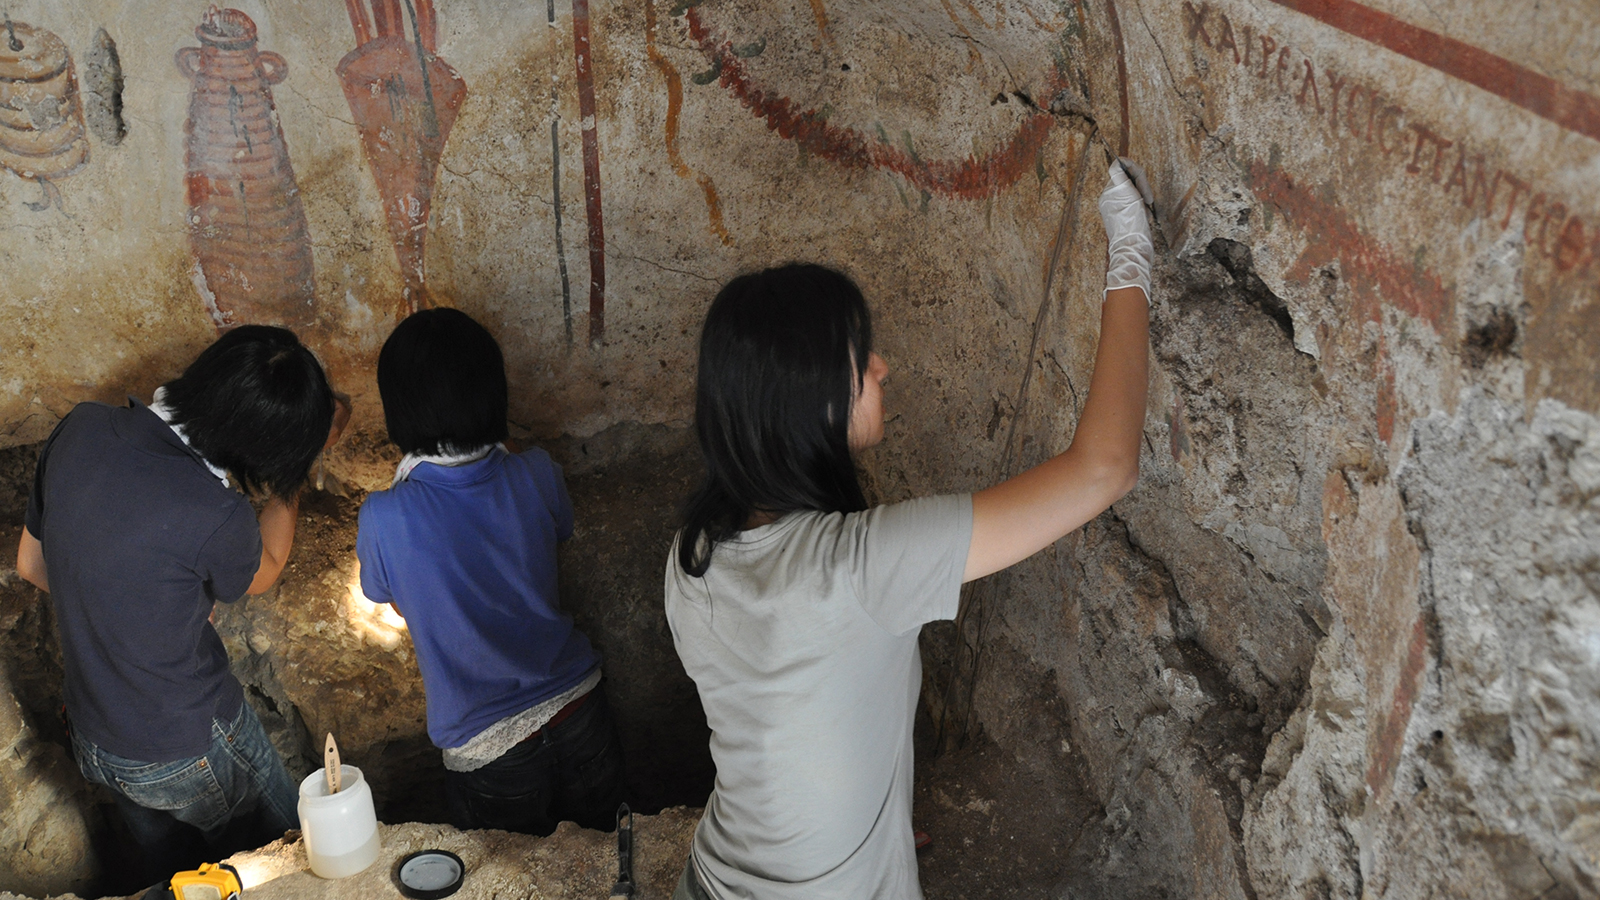 Restoration of Wall Paintings in a Tomb in the Republic of Lebanon